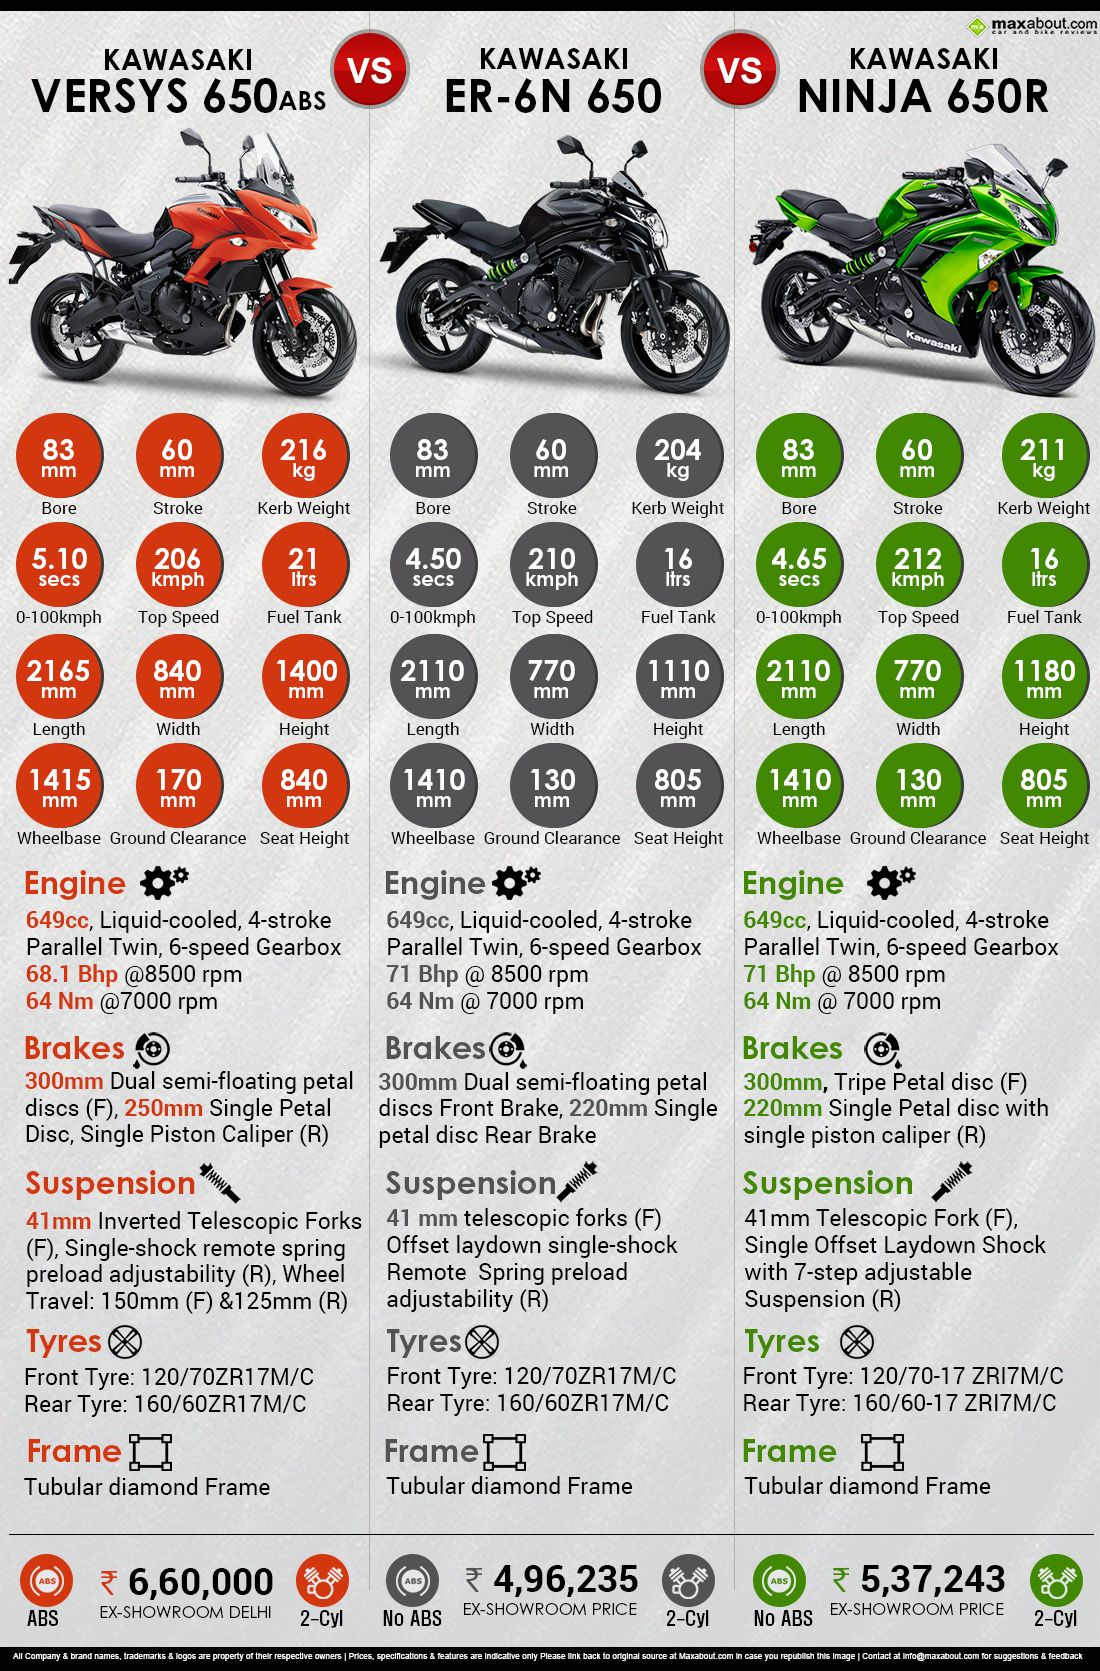 Quick Comparison Of 650cc Kawasaki Motorcycles Versys Vs Er 6n